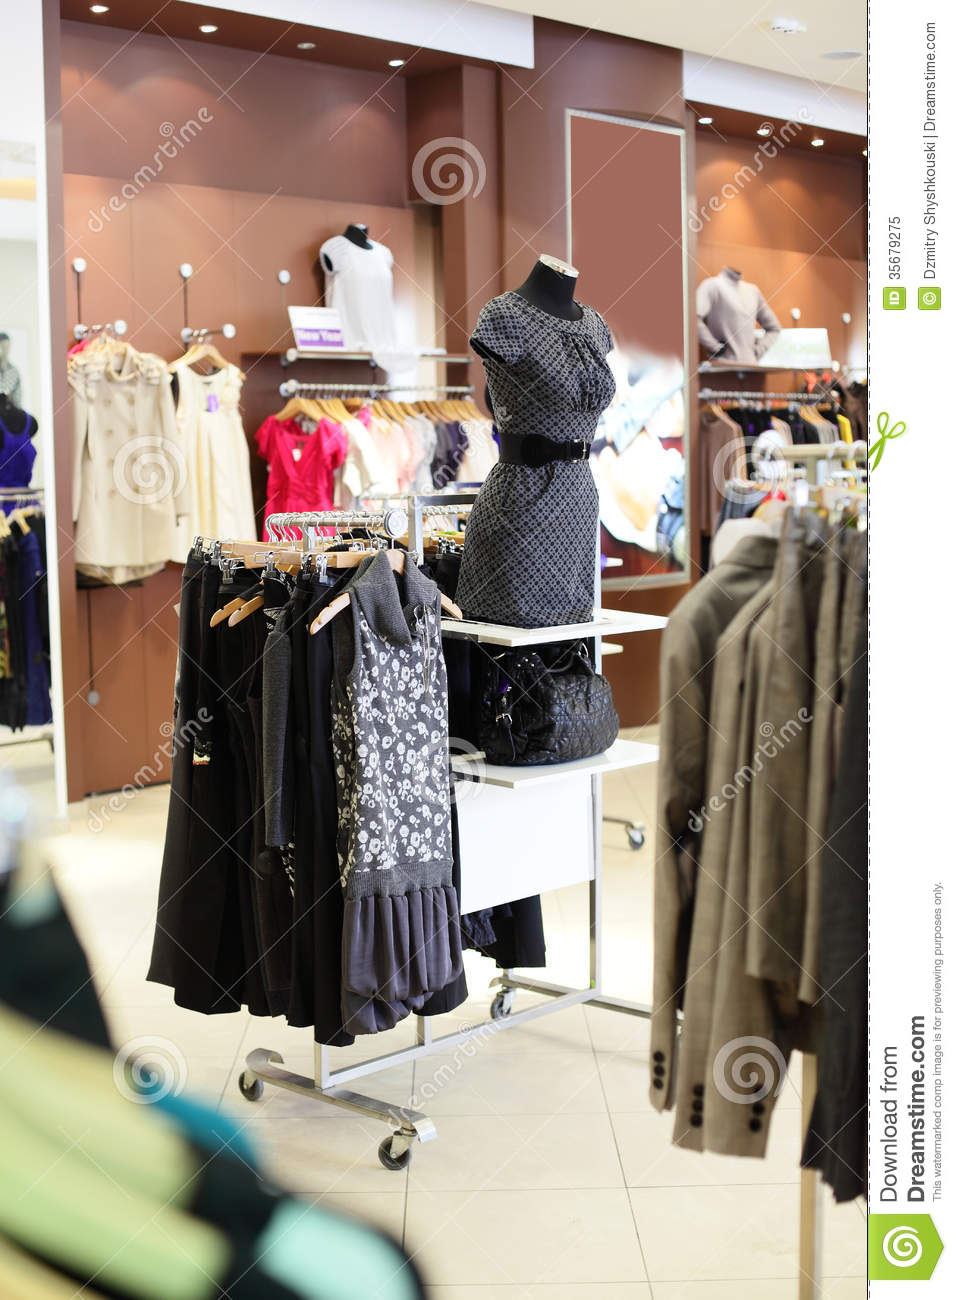 European clothing stores